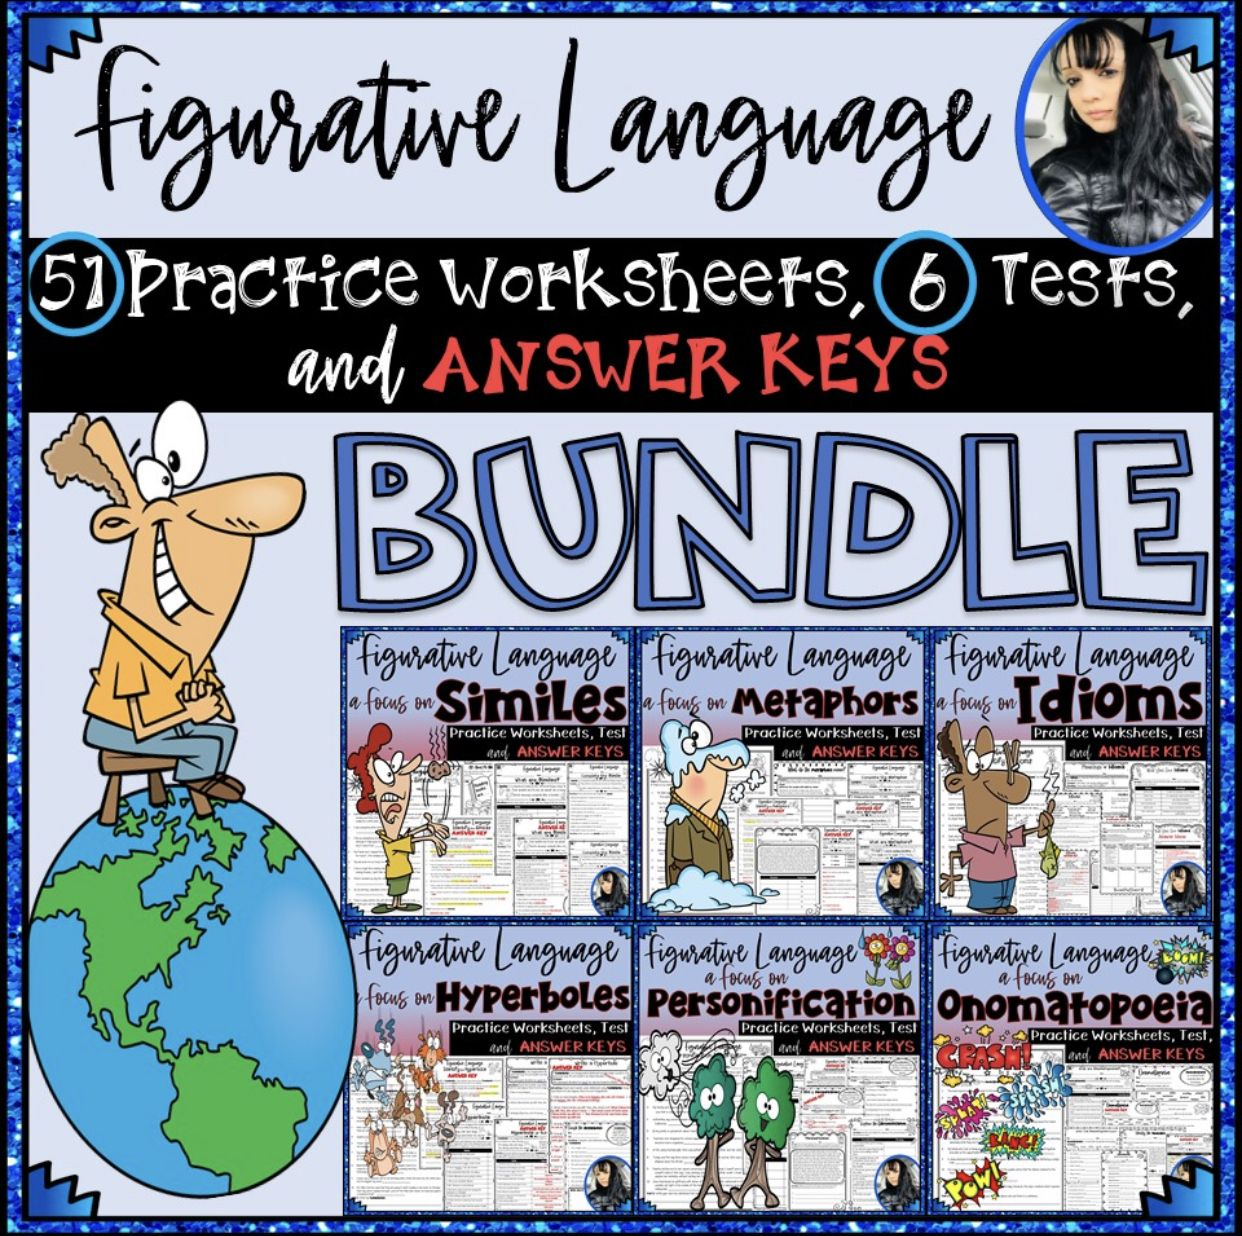 Figurative Language Practice Worksheets Tests And Answer